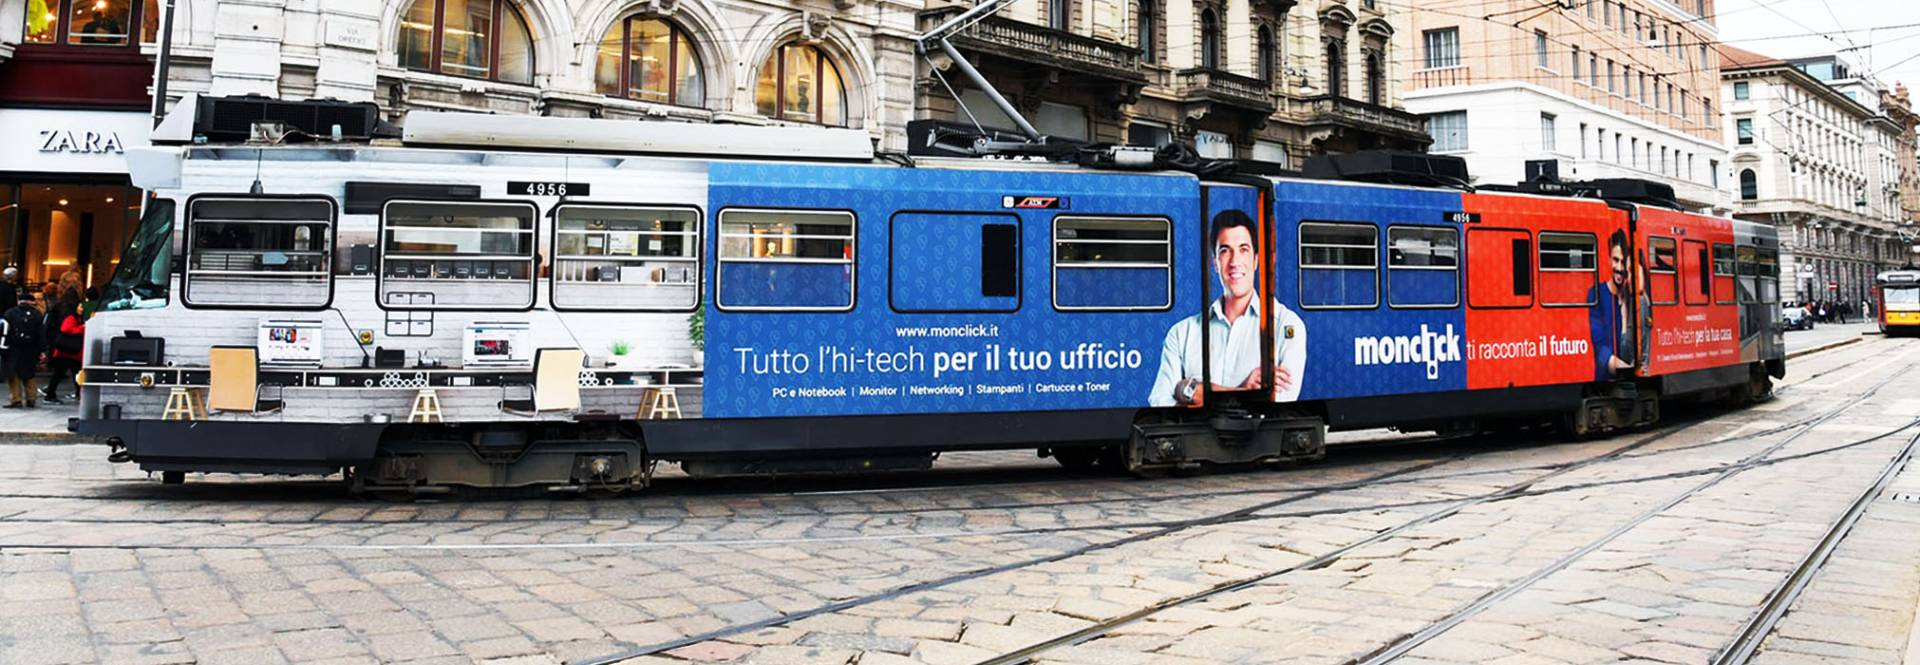 Full-Wrap IGPDecaux Milan for Monclick